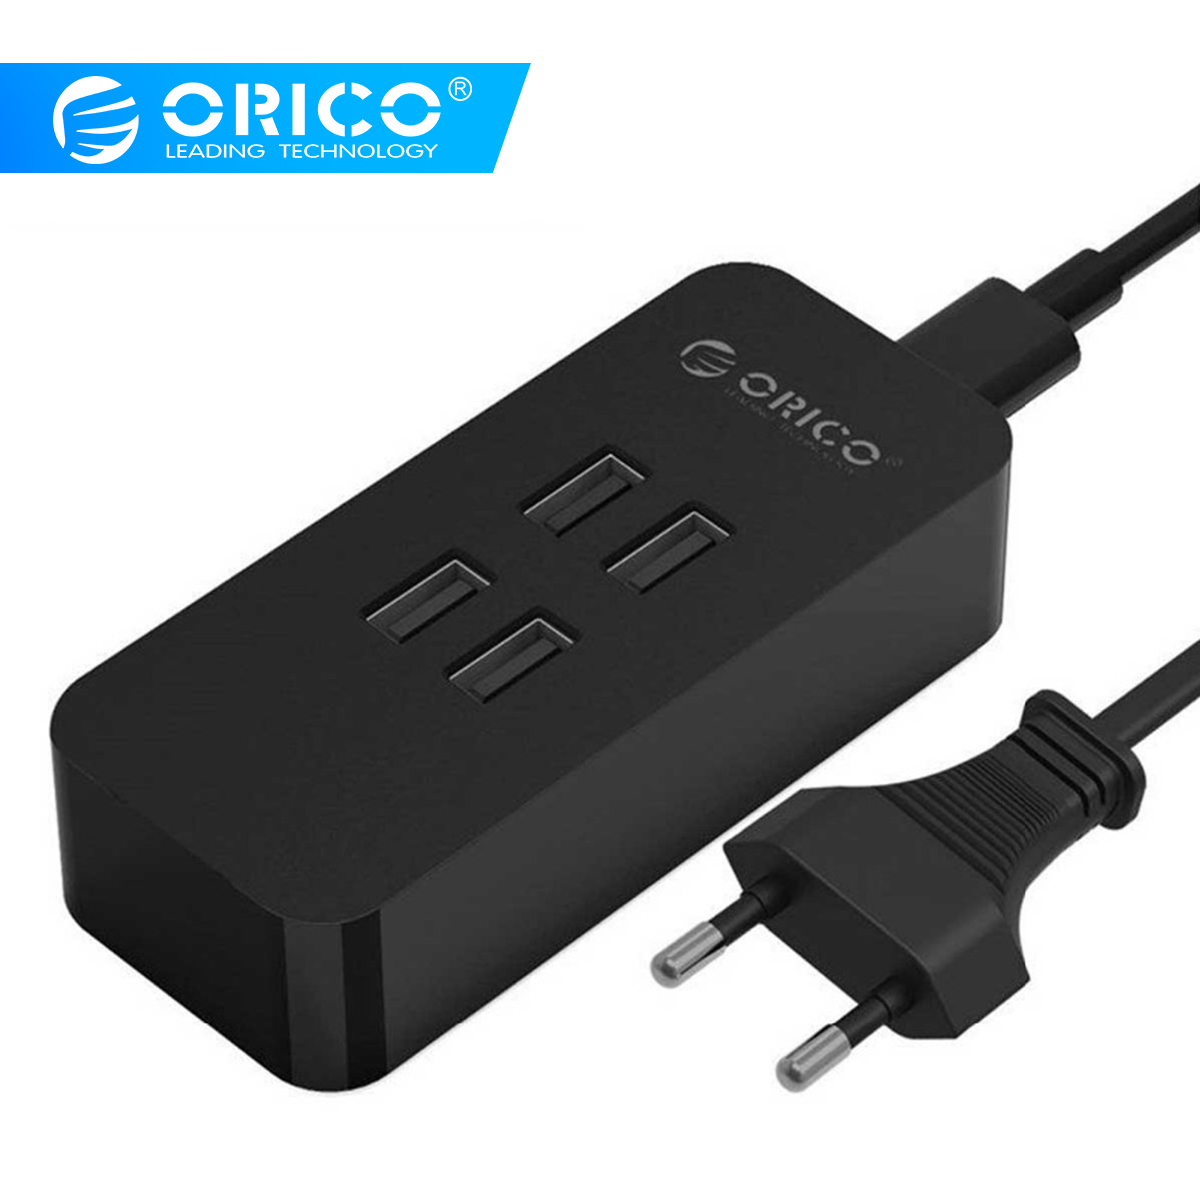 ORICO 4 Port USB Charger Mini Smart Charging Dock Station 5V2.4A *4 Max Output 20W Desktop Charger For Smart Phone Pad Charging